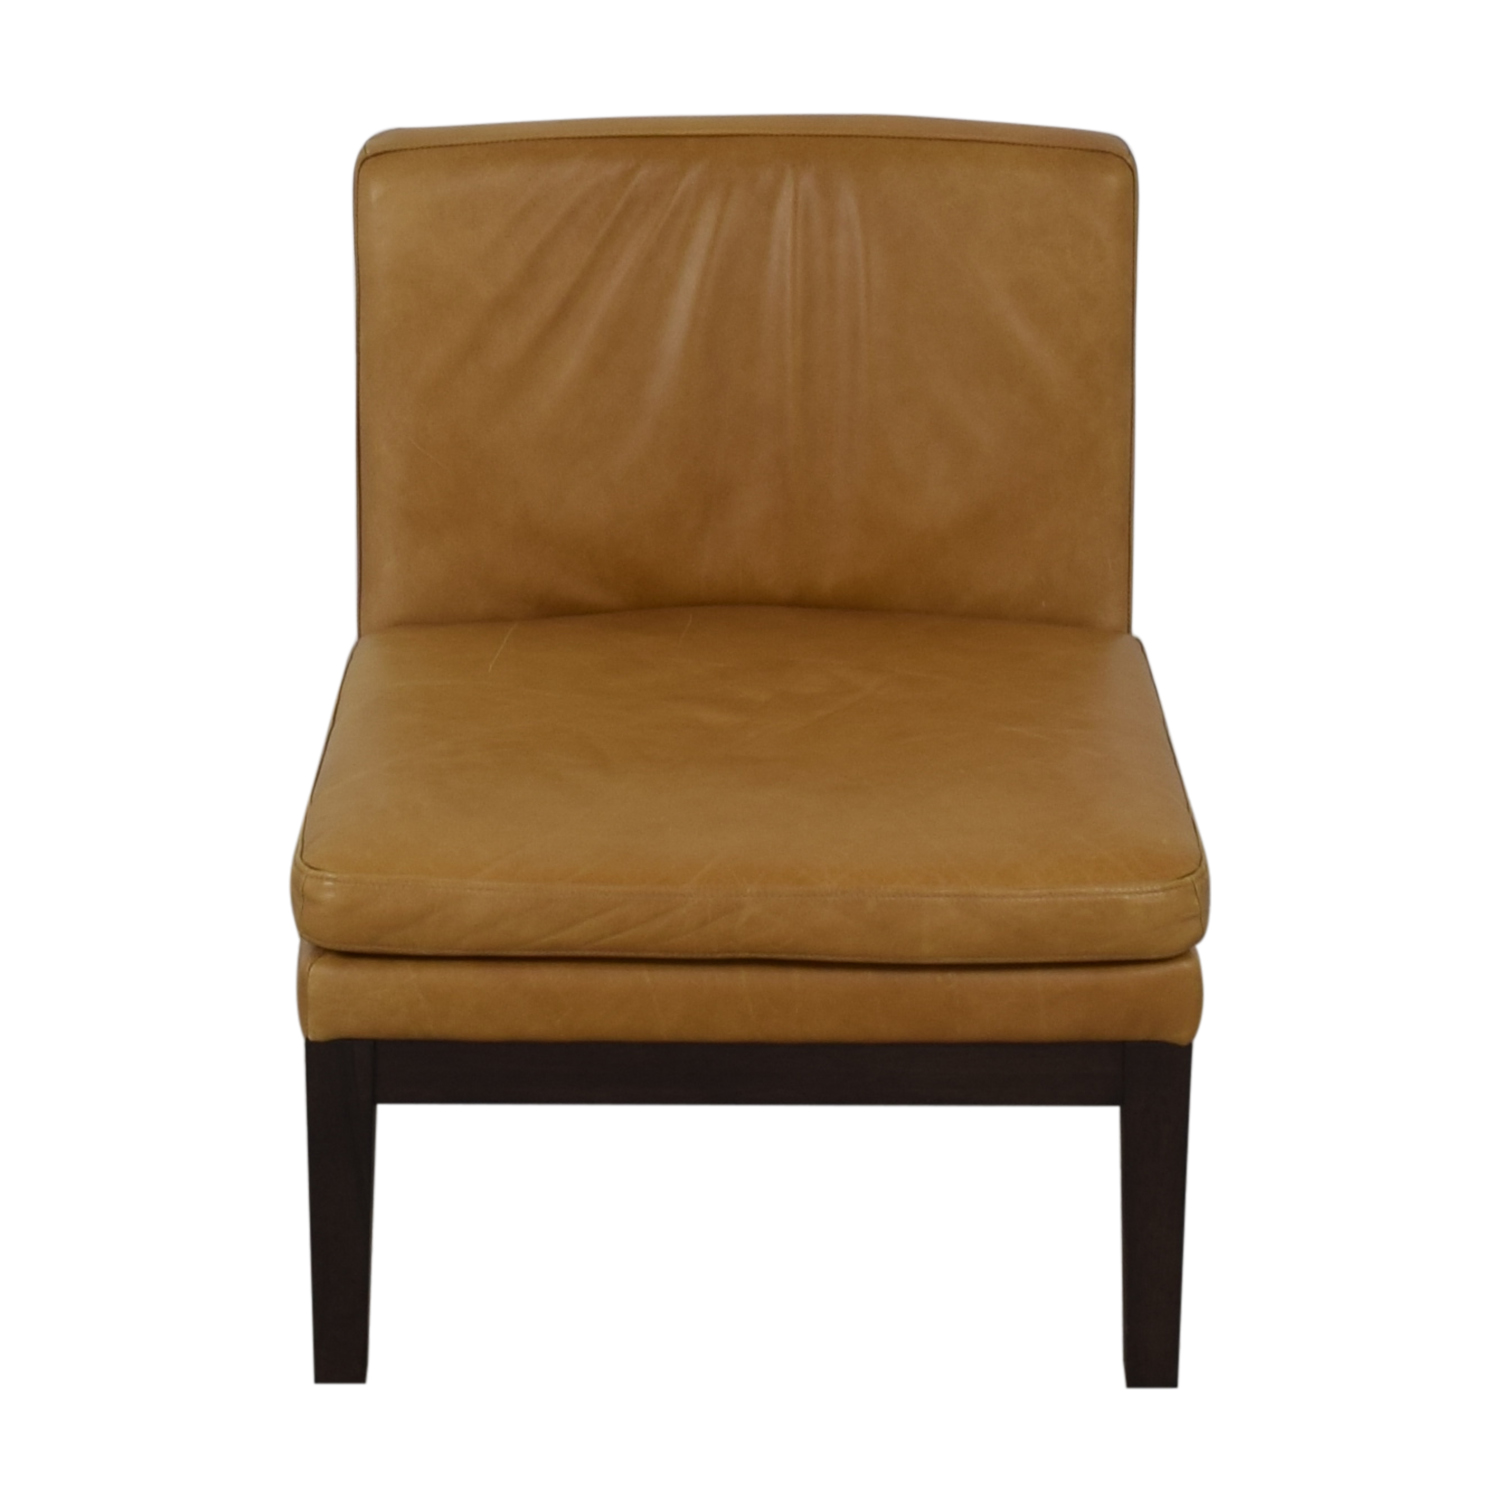 West Elm West Elm Orange Tan Leather Chair brown